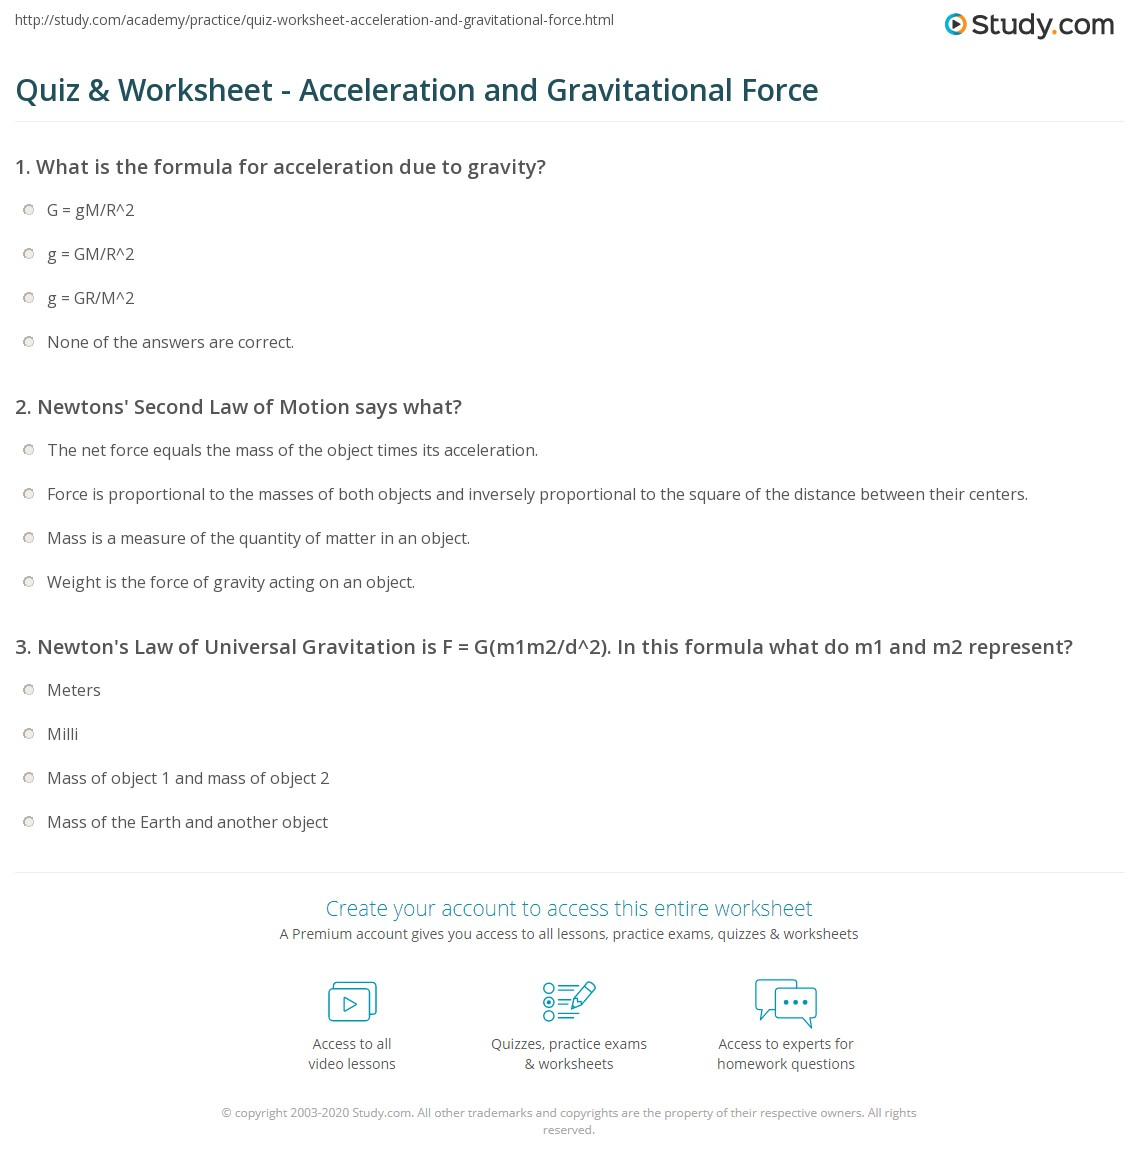 Quiz & Worksheet - Acceleration and Gravitational Force | Study.com